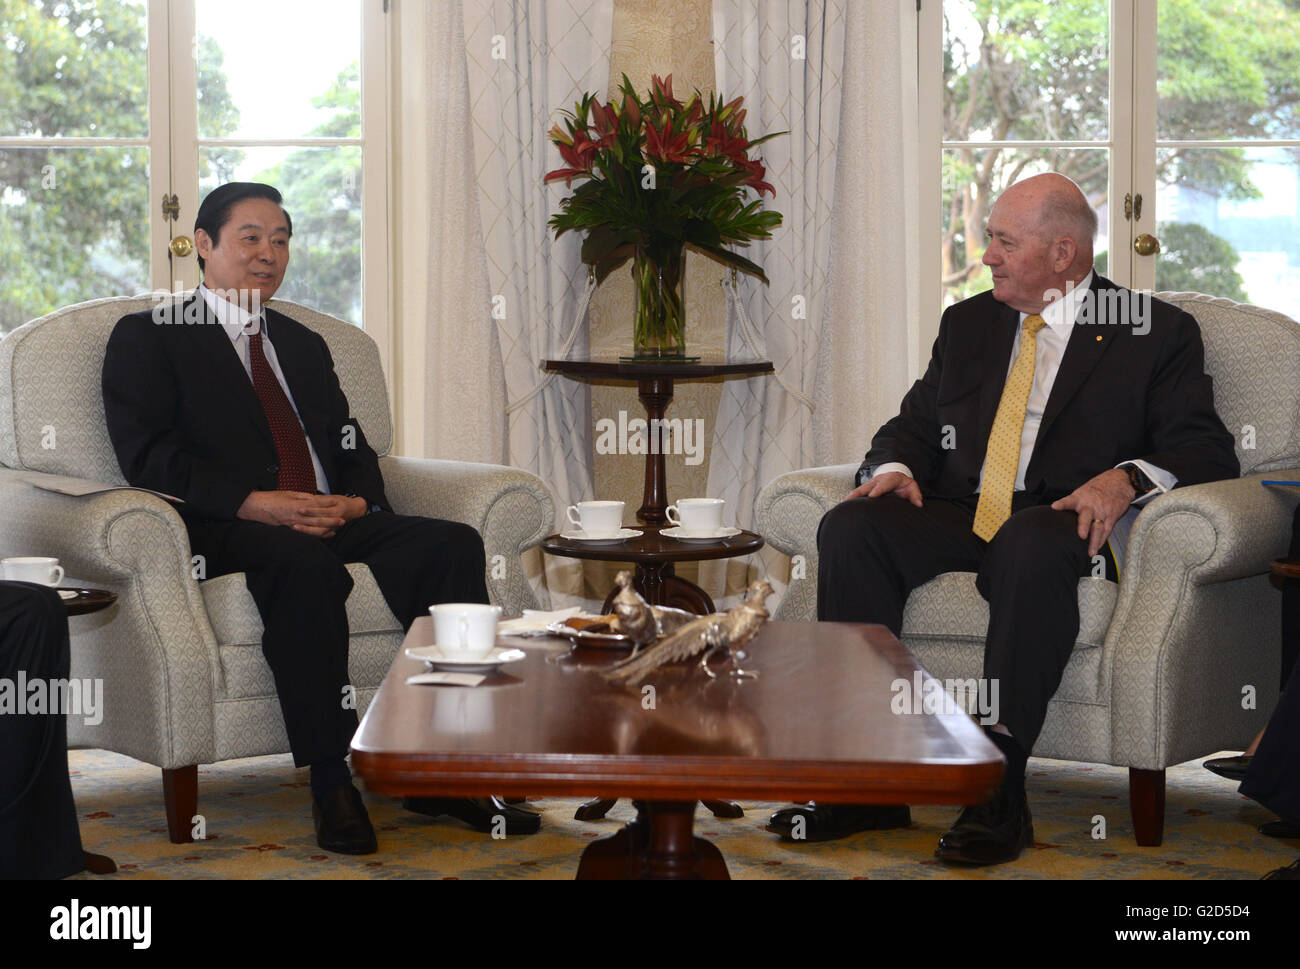 Sydney, Australia. 28th May, 2016. Liu Qibao (L), head of the Publicity Department of the Communist Party of China - Stock Image